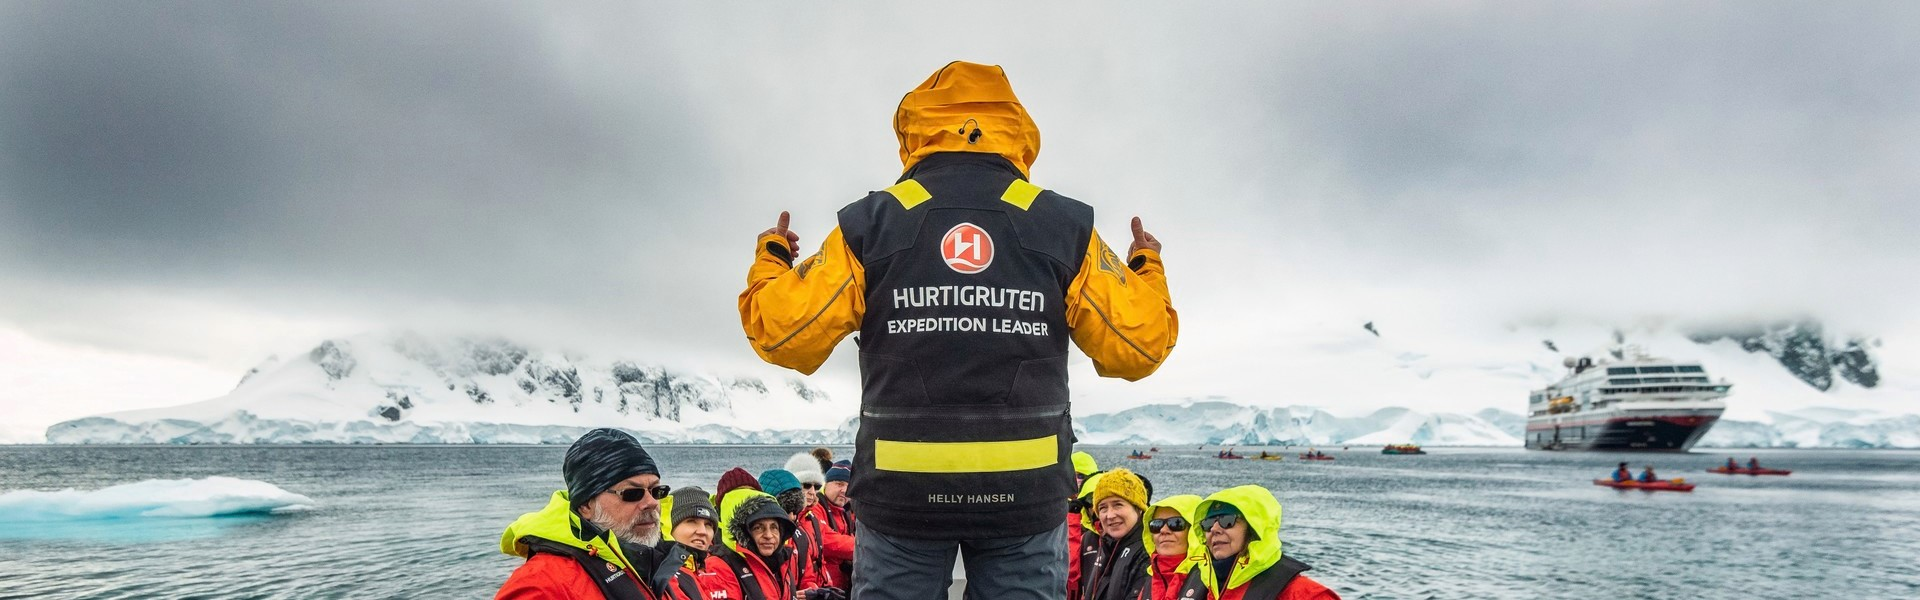 Hurtigruten expedition leader prepping guests for a landing.